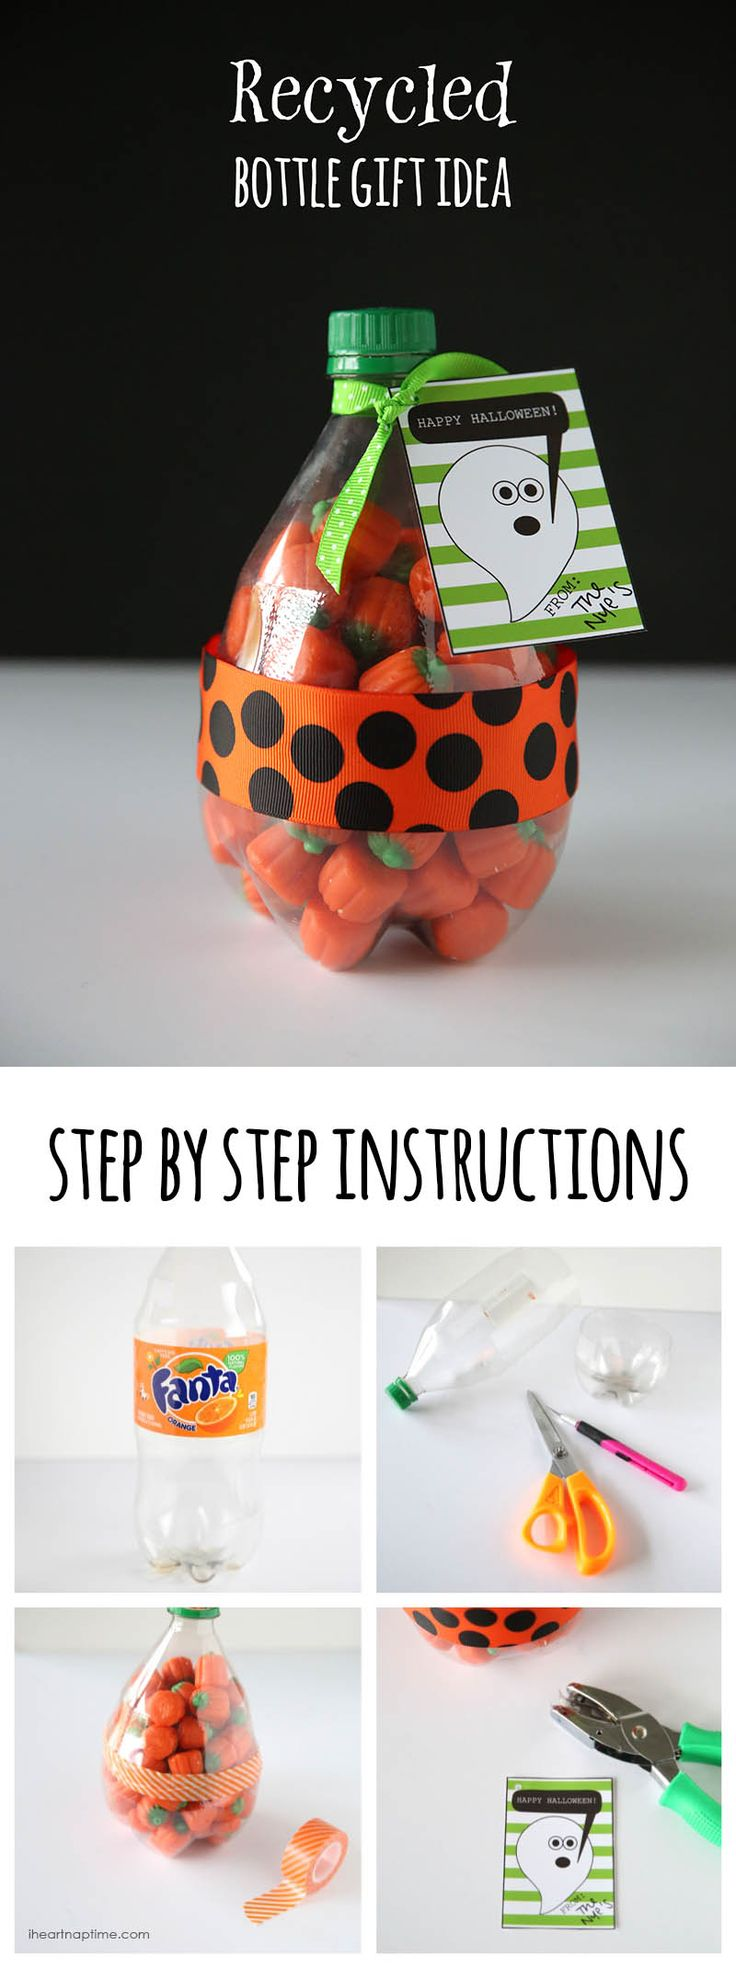 recycled bottle gift idea